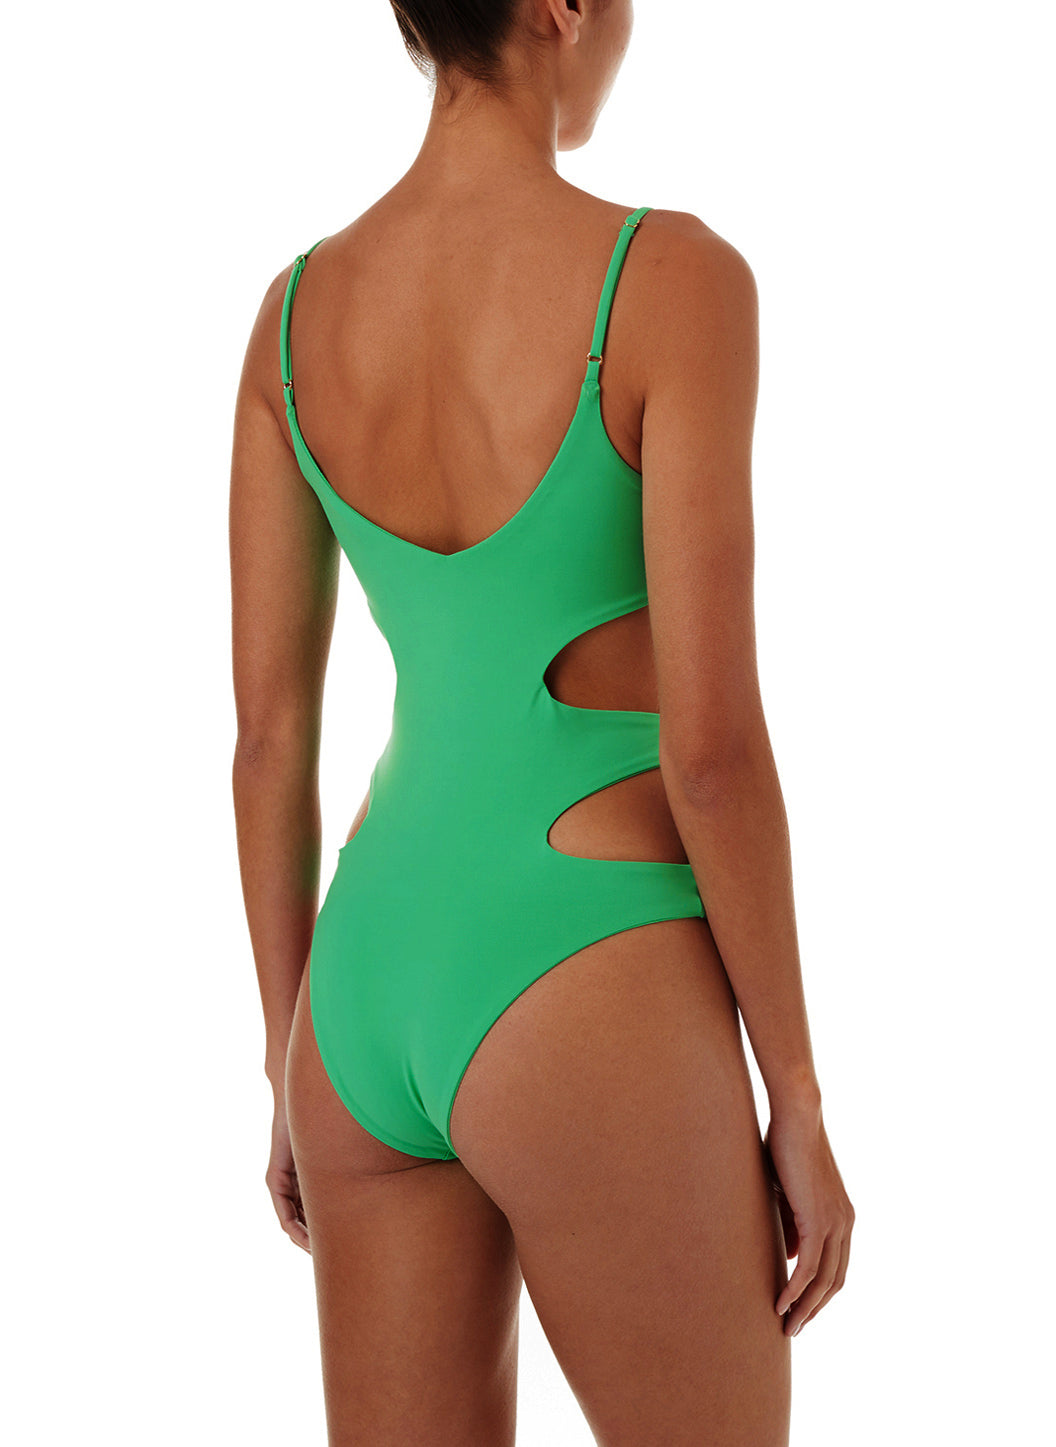 b2078c0702 Santorini Green Over The Shoulder Cut Out One Piece Swimsuit ...